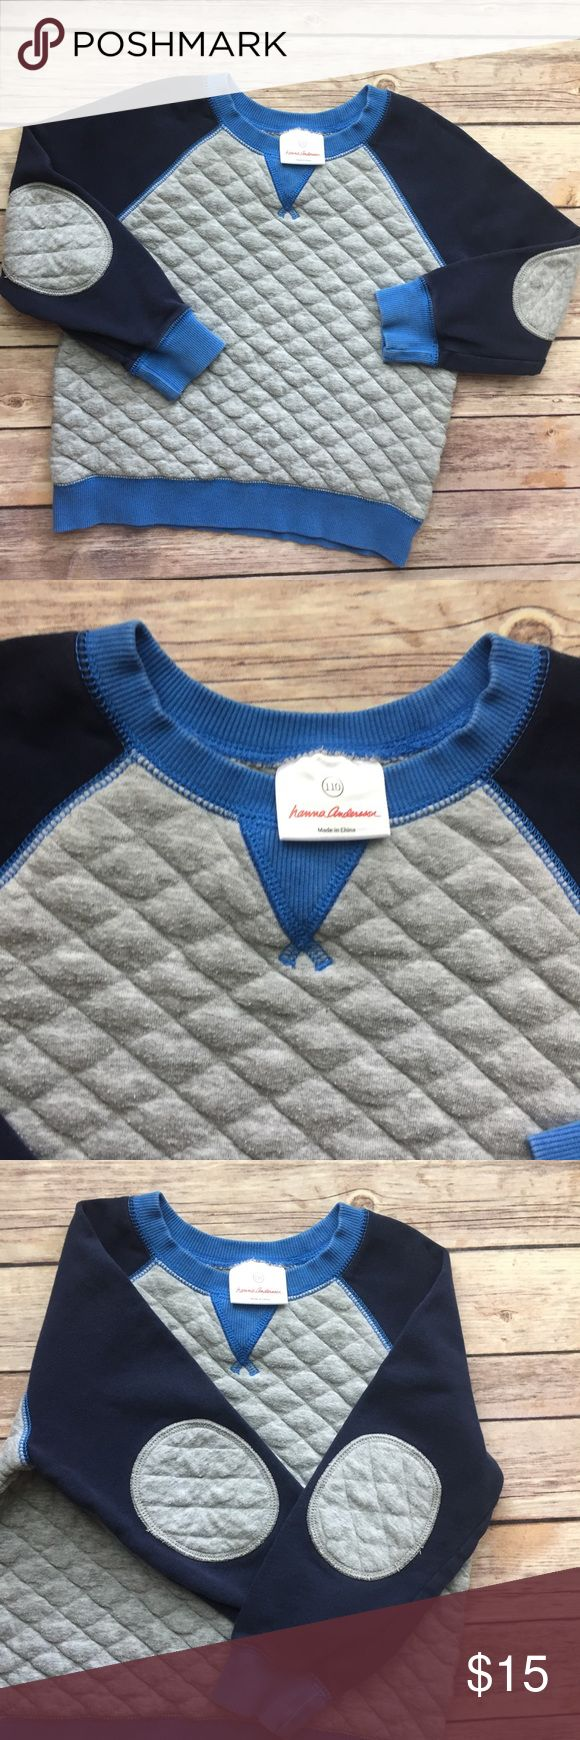 Hanna Andersson Boys Quilted Sweatshirt-110 Love this Hanna Andersson Boys Quilted Sweatshirt with elbow patches. Size 110 or US 5-6. In VGUC aside from some light pre-pilling over the Quilted areas of the Sweatshirt. Hanna Andersson Shirts & Tops Sweatshirts & Hoodies